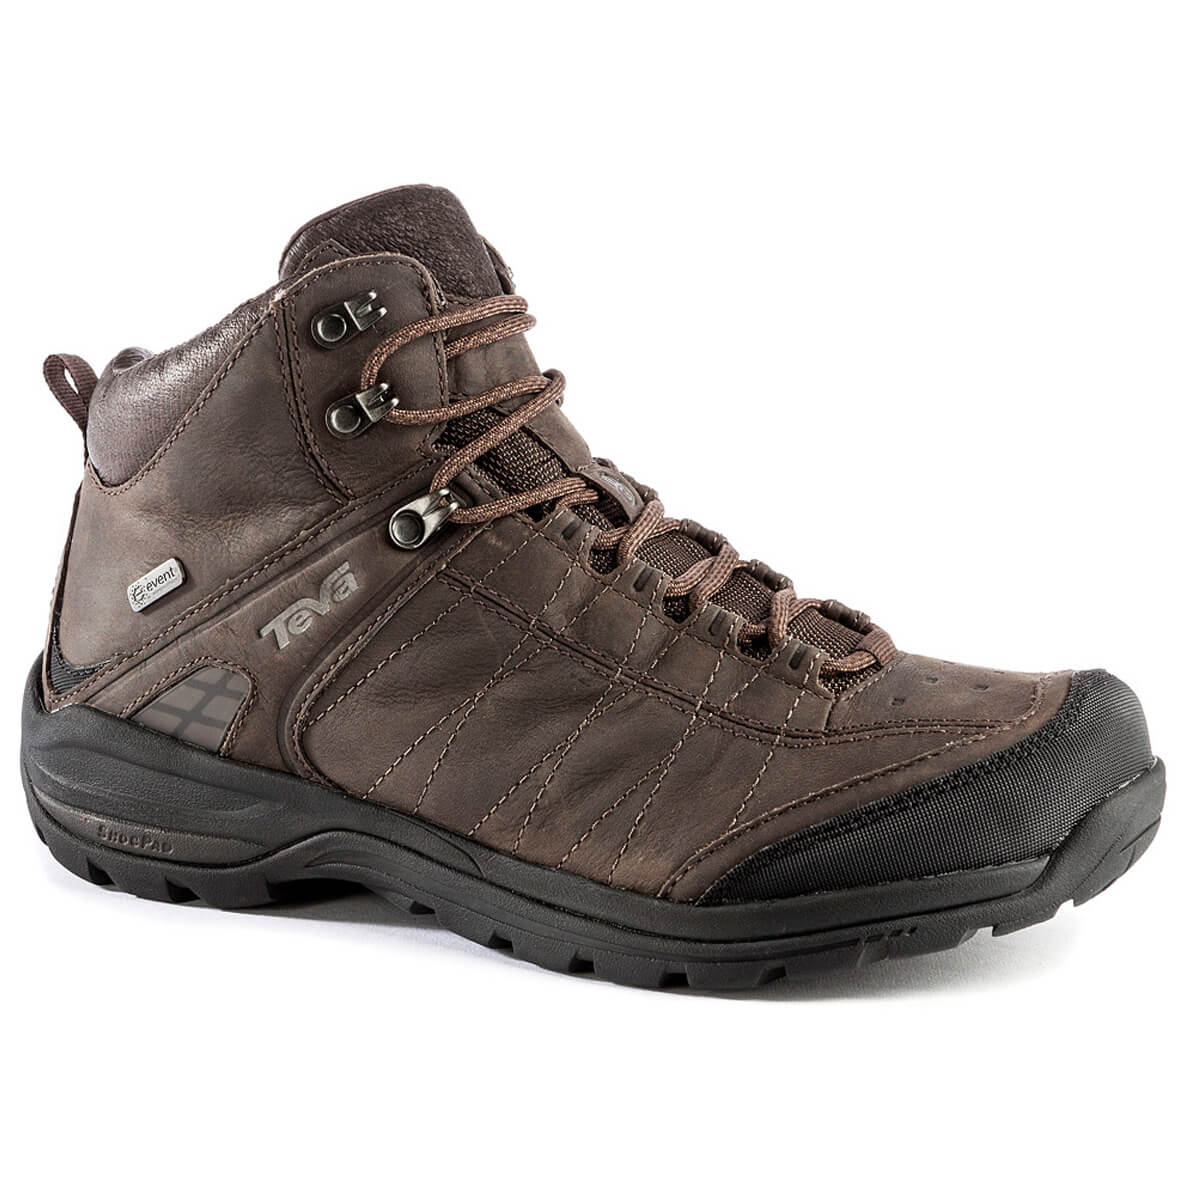 3a76a4135 Teva Kimtah Mid Event Leather - Walking Boots Men s